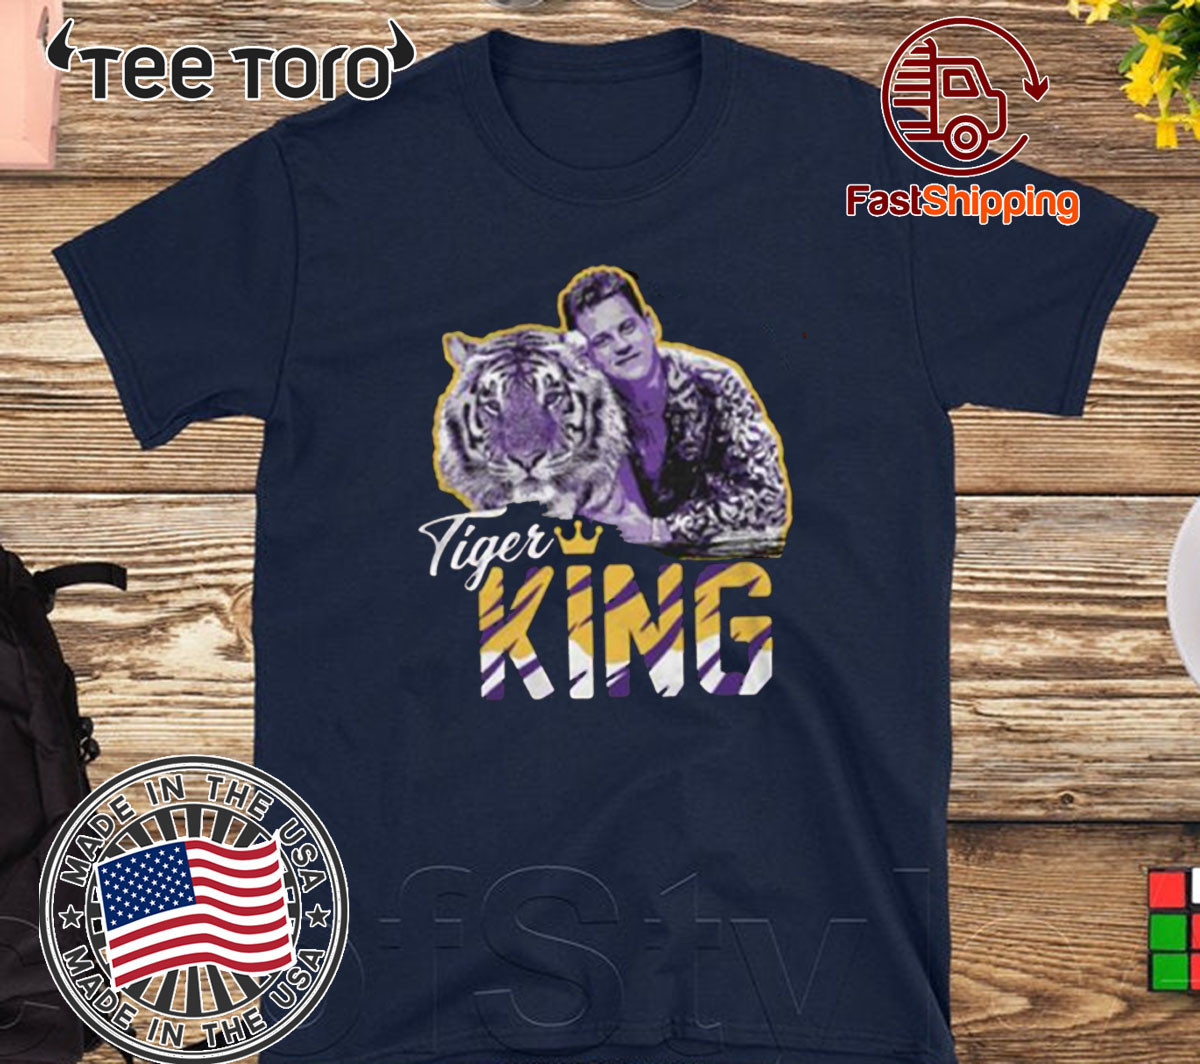 Tiger King Shirt #Tiger2020